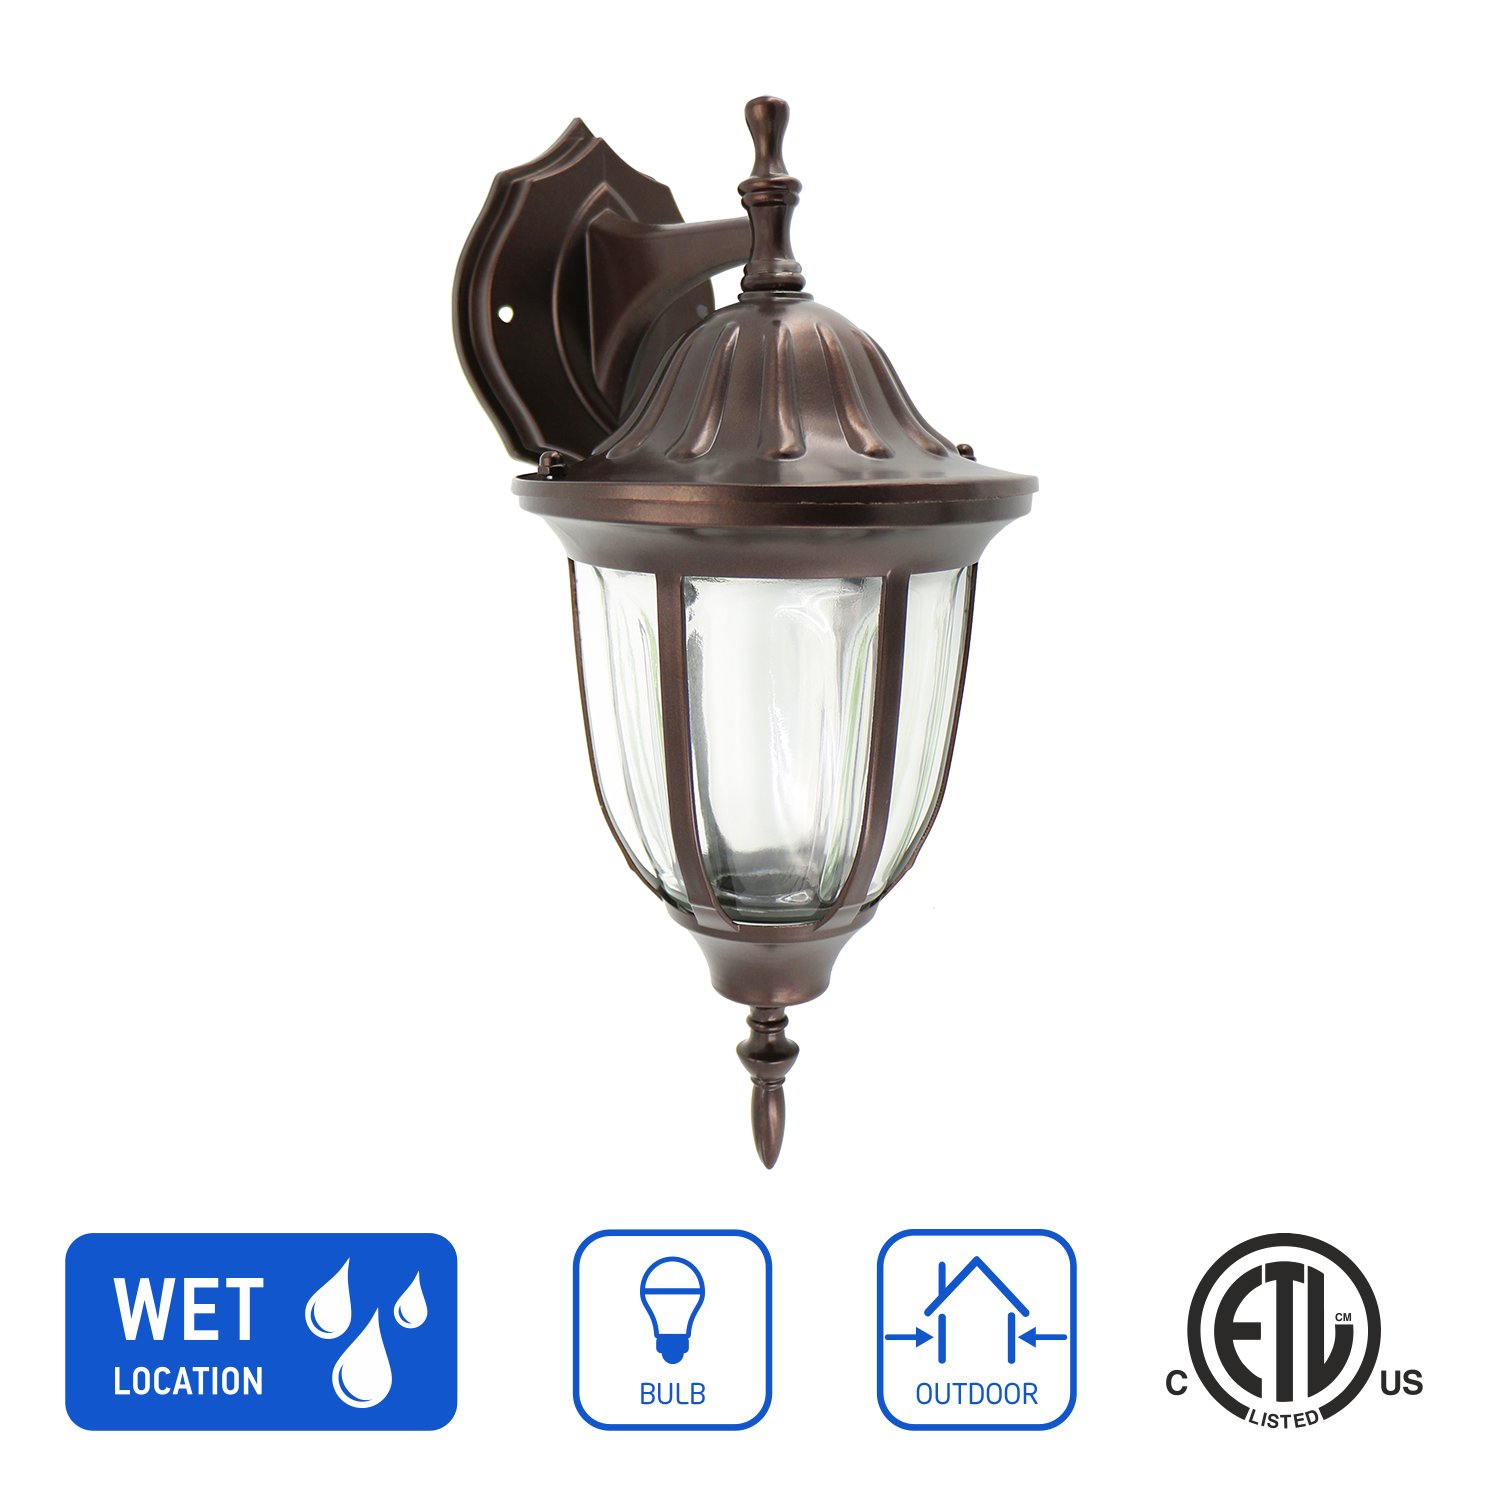 IN HOME 1-Light Outdoor Exterior Wall Down Lantern, Traditional Porch Patio Lighting Fixture L03 with One E26 Base, Water-Proof, Bronze Cast Aluminum Housing, Clear Glass Panels, ETL Listed